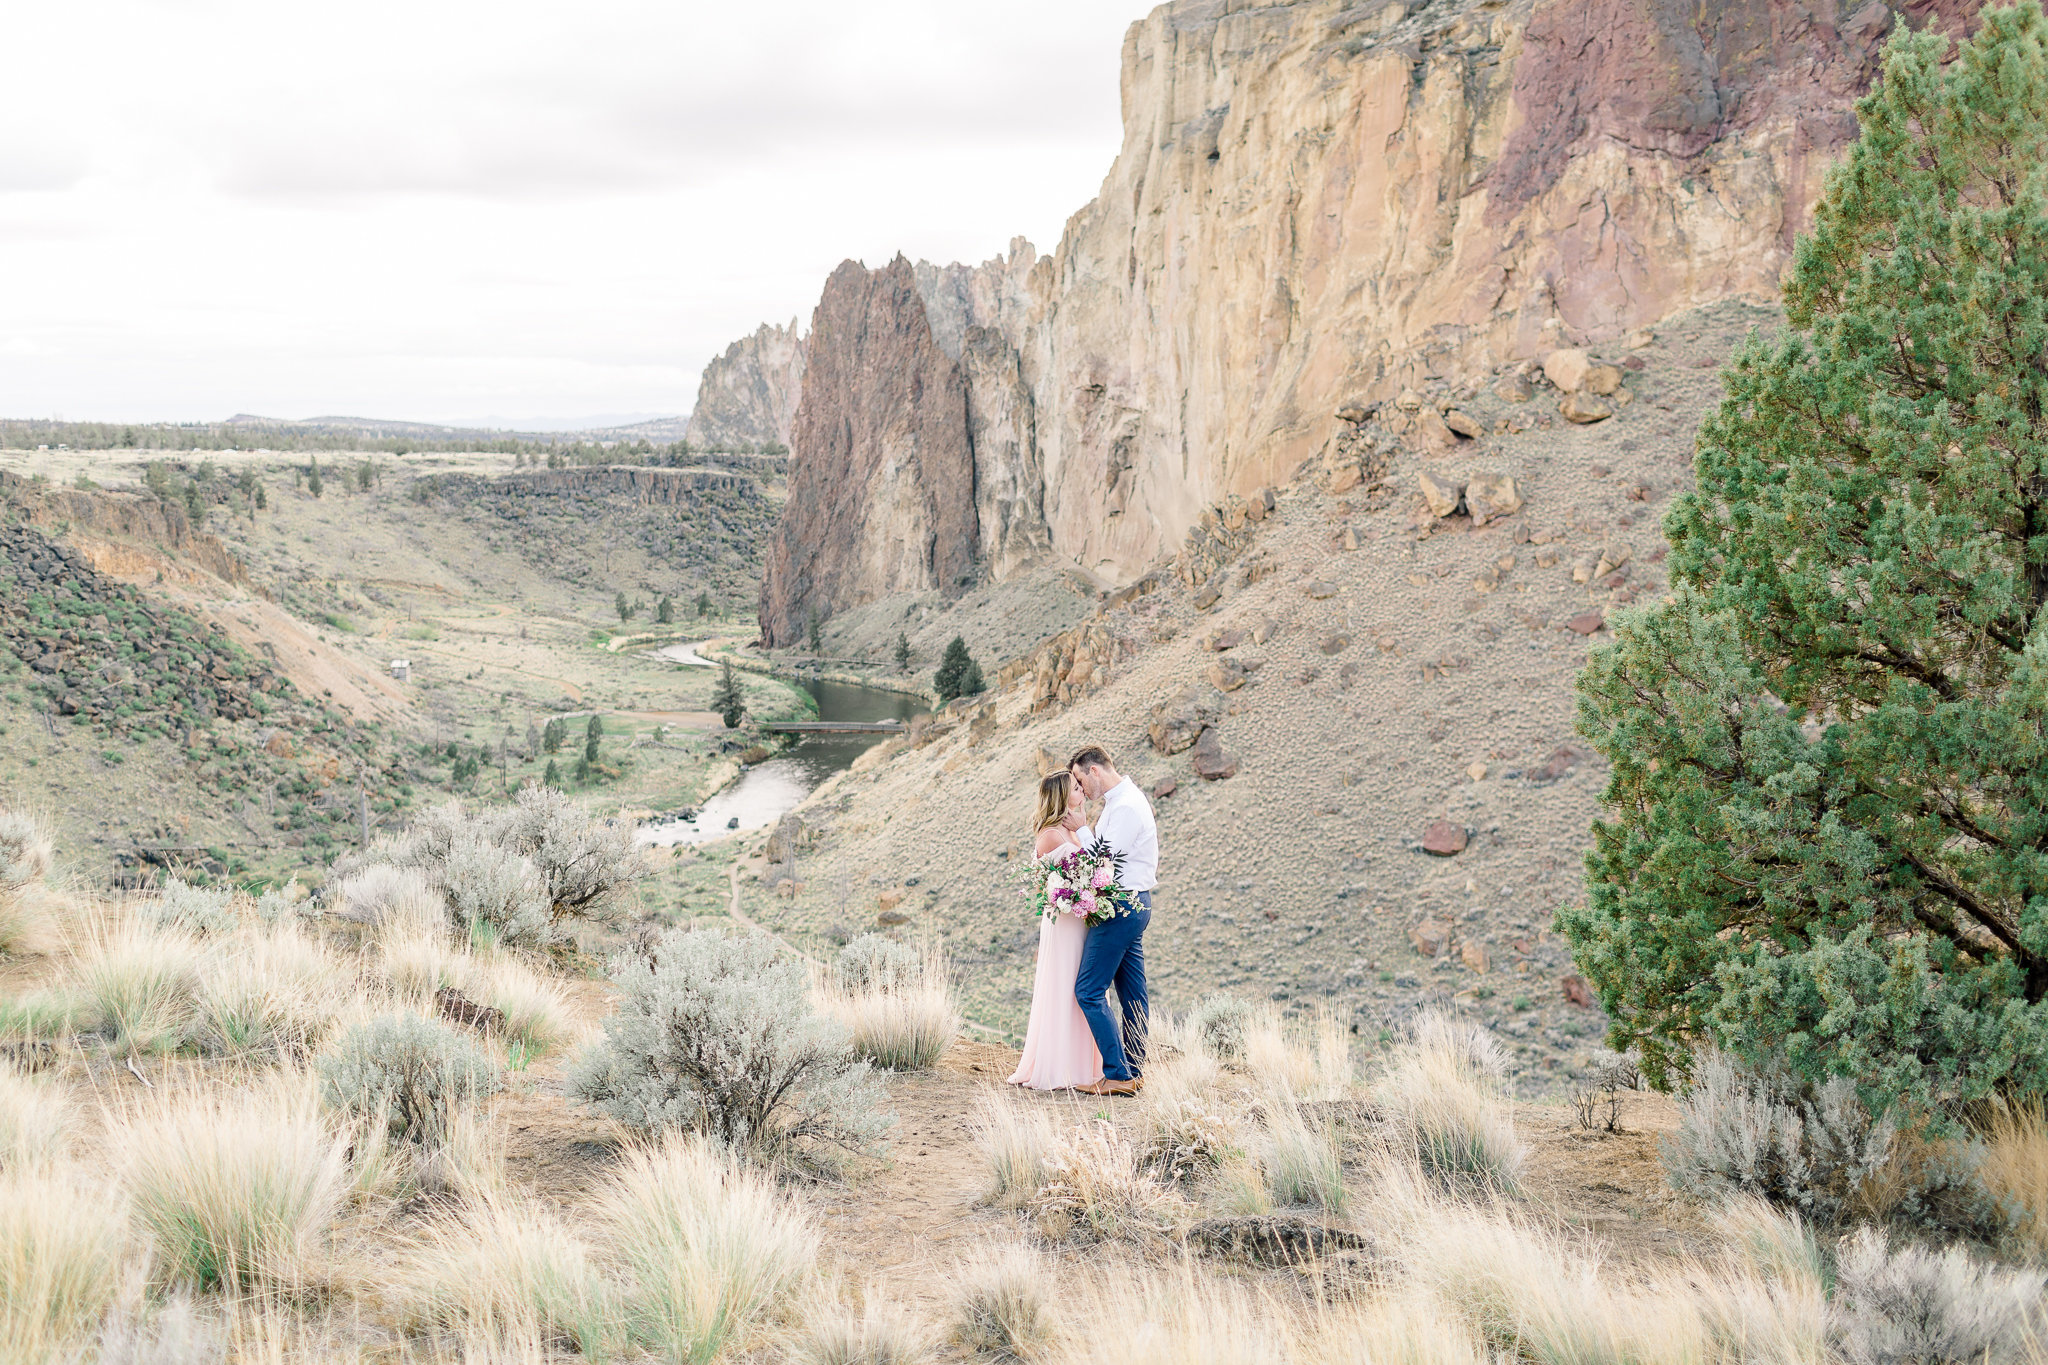 photographe-seance-anniversaire-de-mariage-smith-rock-state-park-oregon-lisa-renault-photographie-wedding-anniversary-session-photographer-23